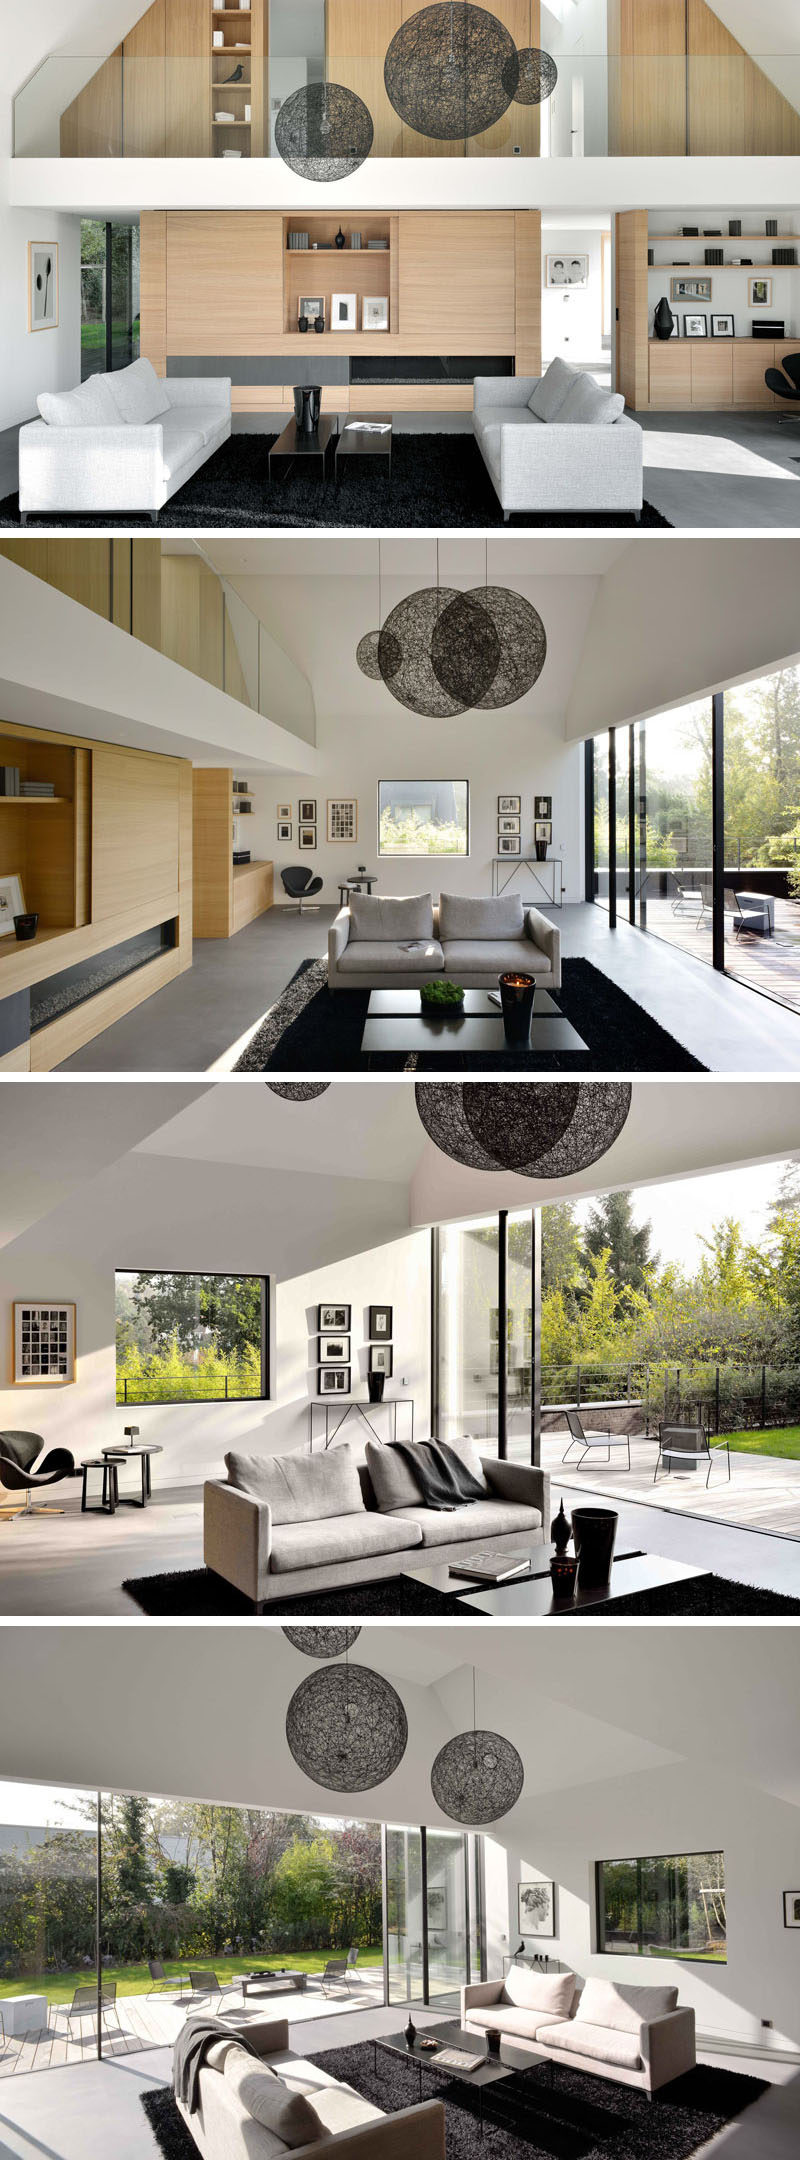 The main living area of this renovated home has been opened up and is now two storeys high, allowing for a spacious living room that opens up to the backyard.